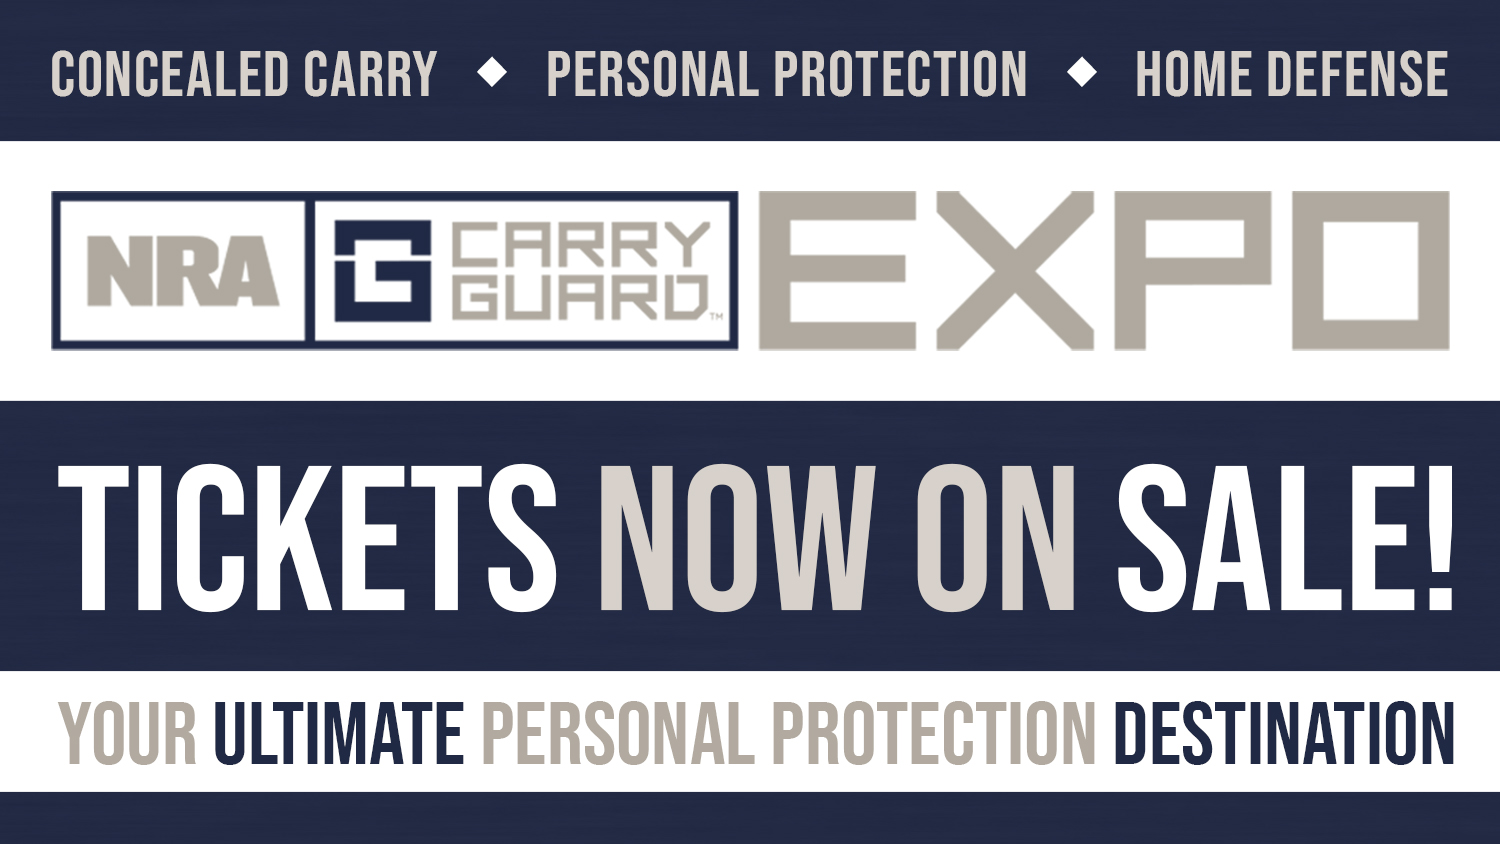 2018 NRA Carry Guard Expo Tickets On Sale Now!